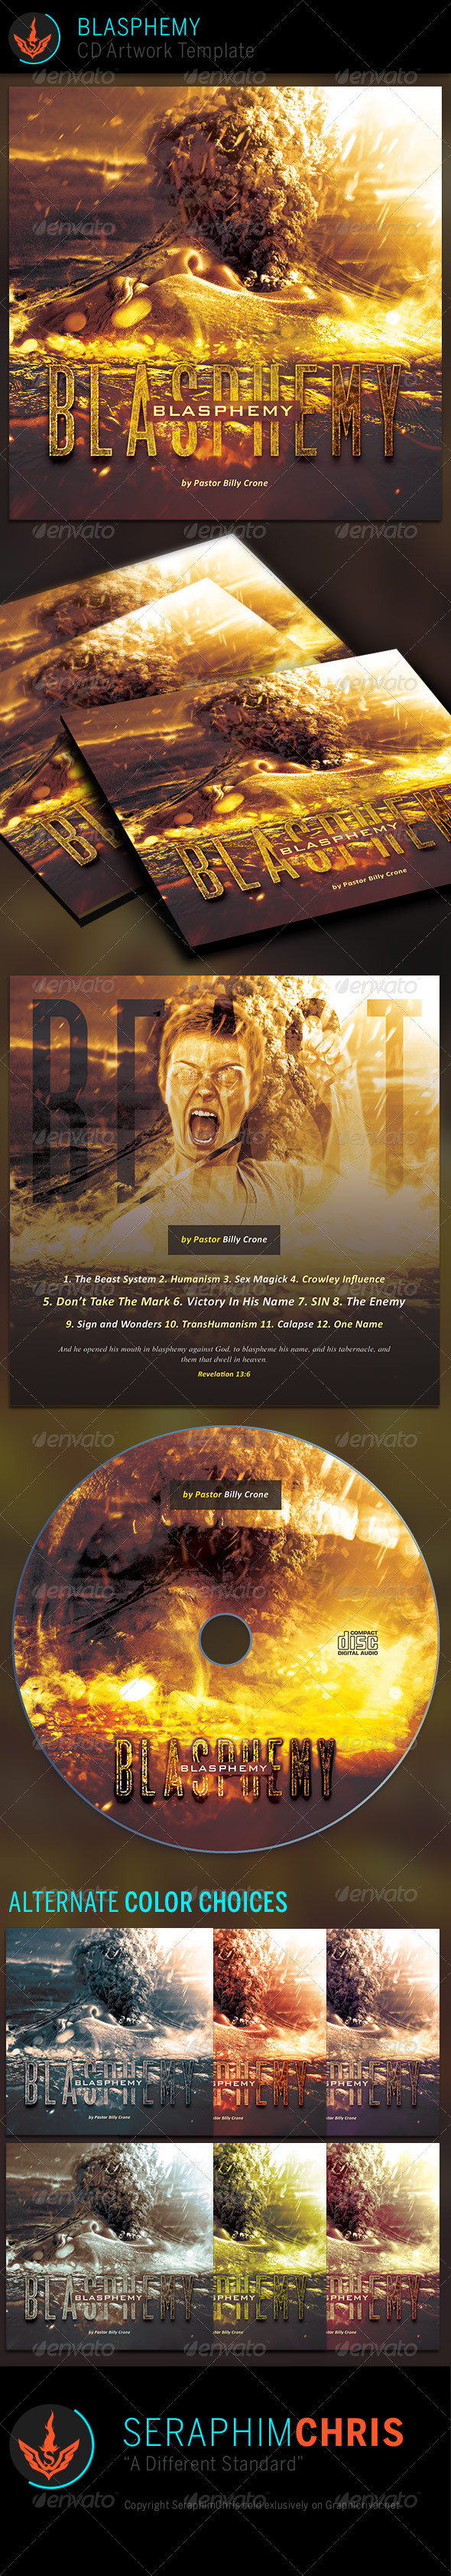 Blasphemy: CD Artwork Template - CD & DVD artwork Print Templates